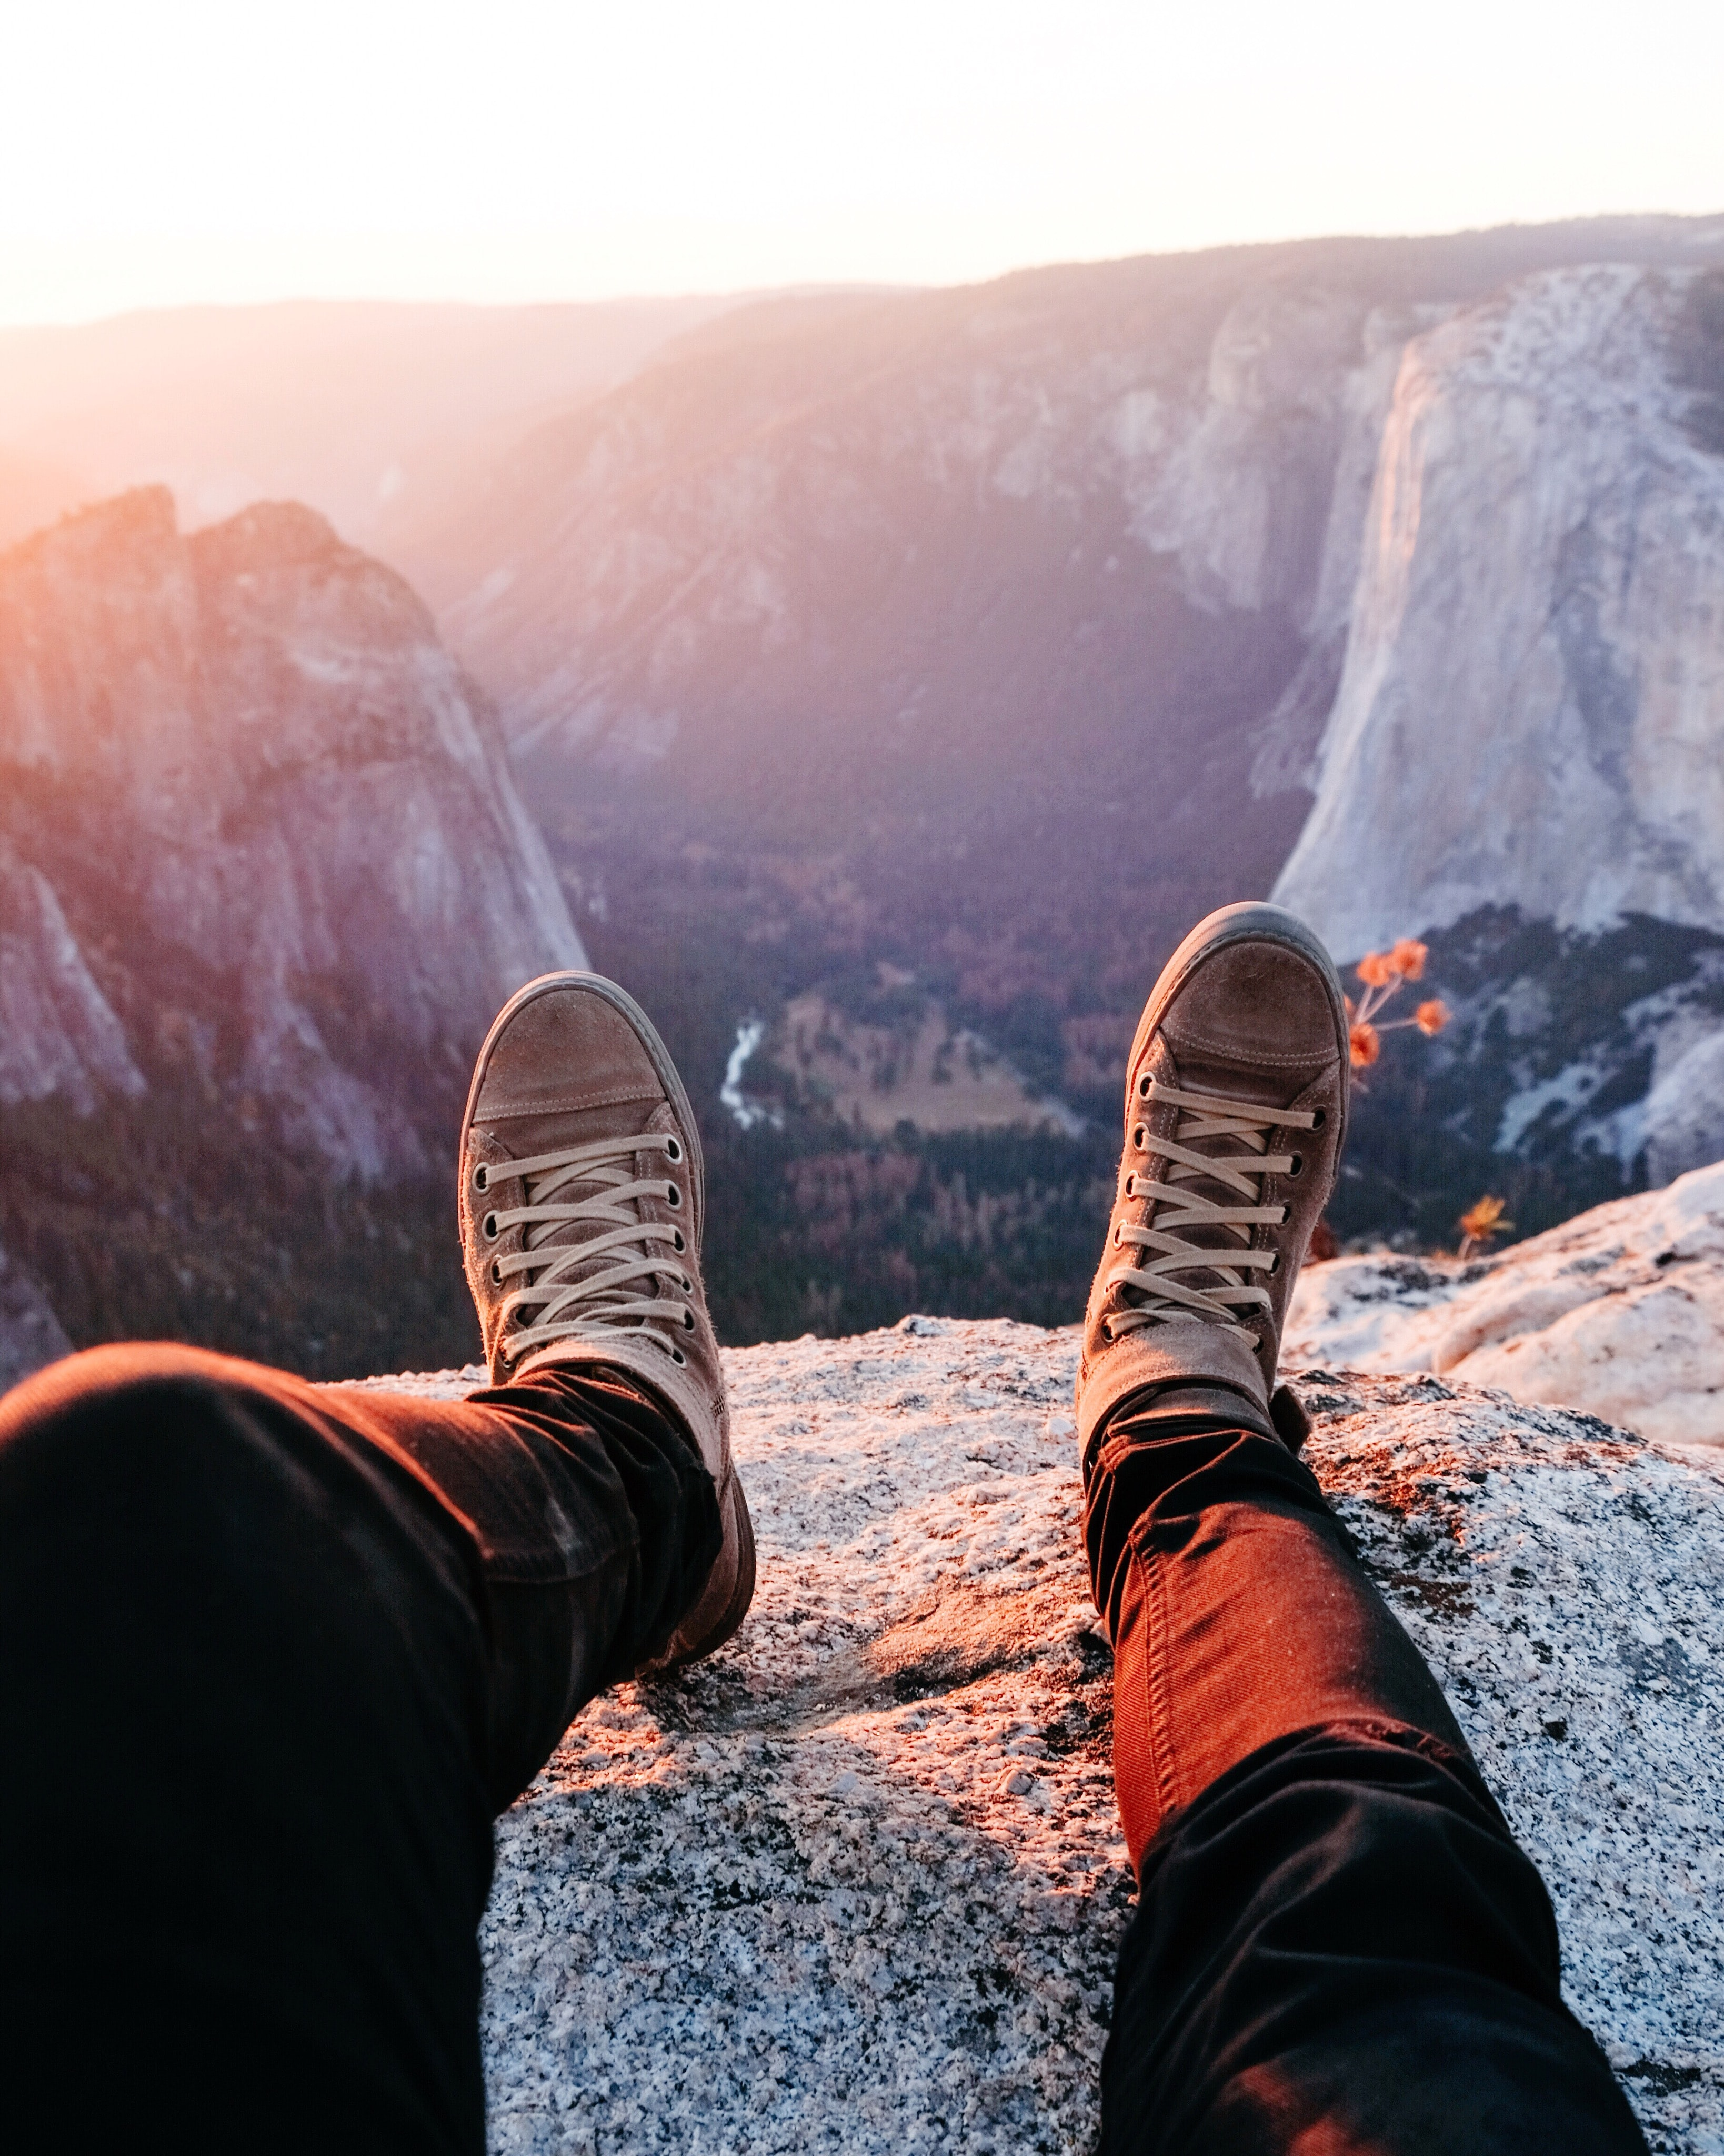 A person's jeans and converse hanging out over the edge of a cliff at Yosemite National Park